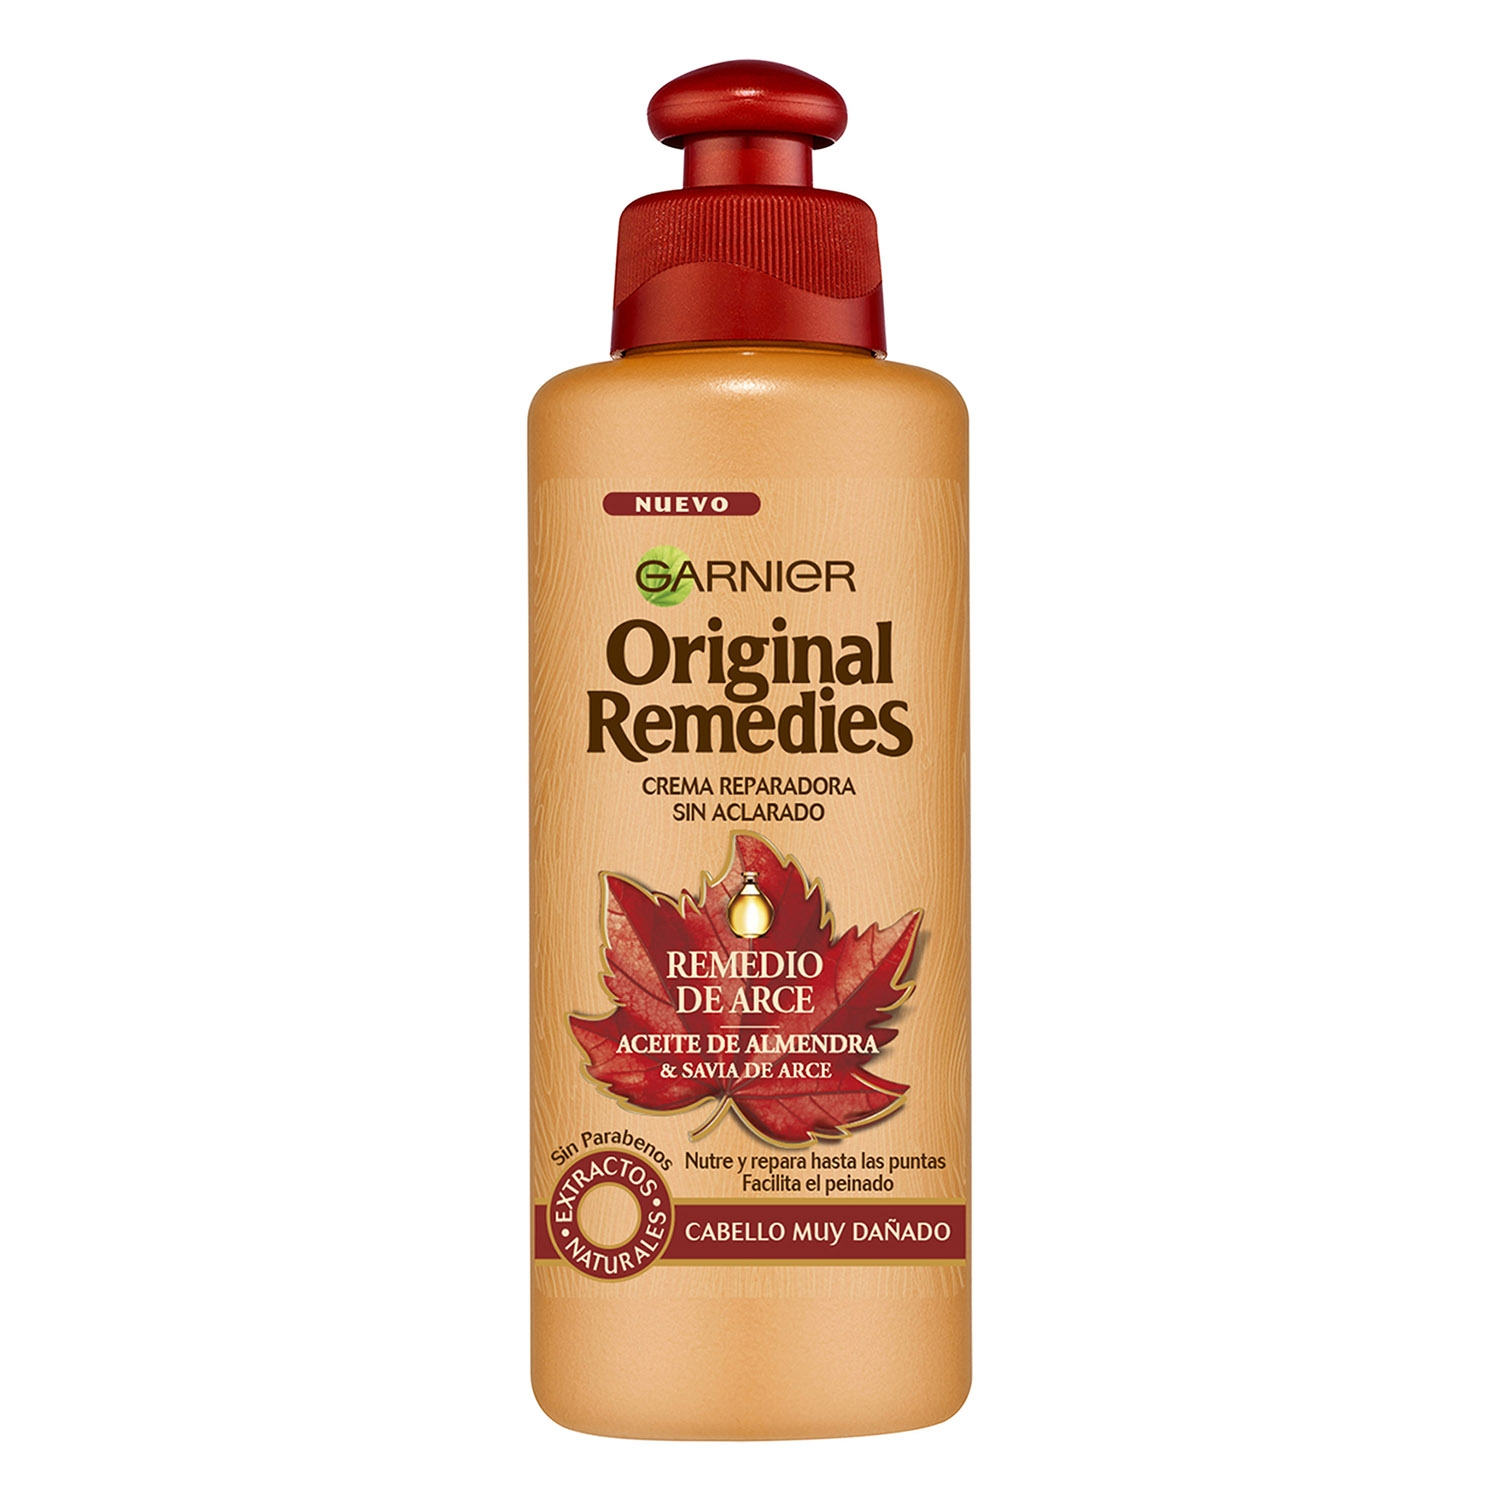 Aceite en crema sin aclarado remedio de savia de arce Original Remedies 200 ml.